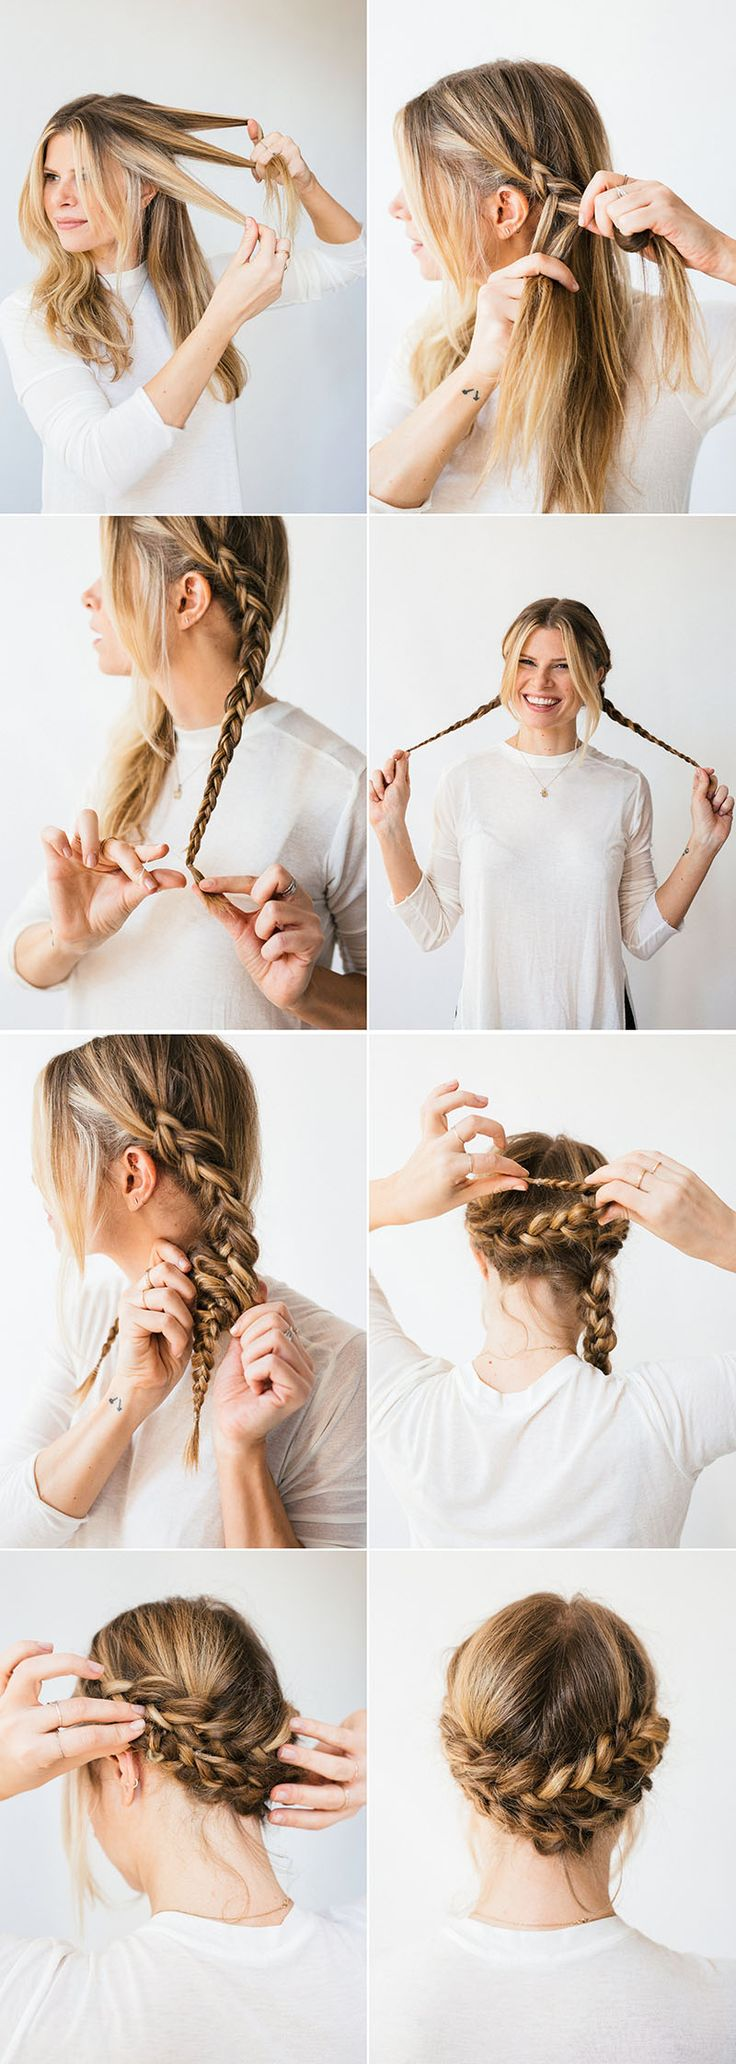 A simple braided updo perfect for romantic walks and crisp fall days.